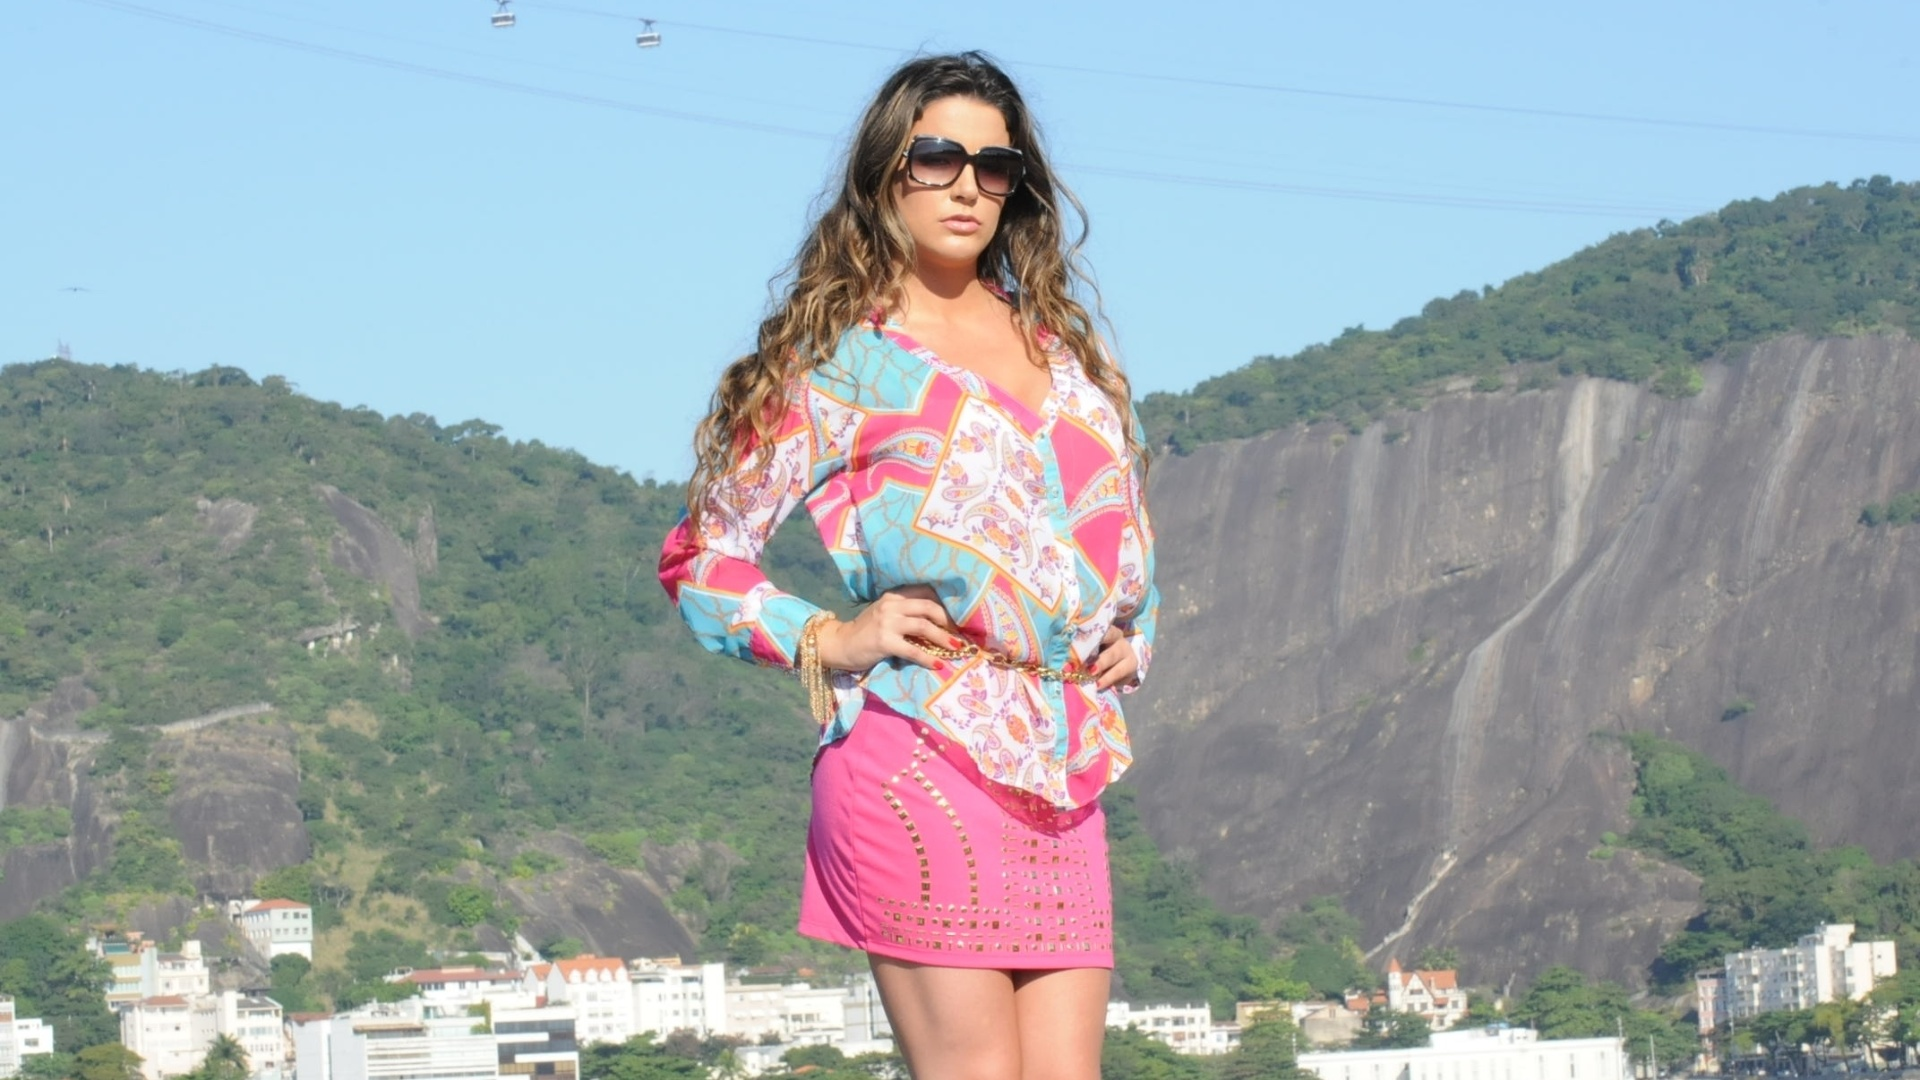 A ex-BBB Laisa Portela fez ensaio fotográfico no Rio (3/7/12). A modelo é a estrela da coleção verão 2012/2013 de uma grife feminina. Ela também se prepara para lançar uma linha de roupas com seu nome